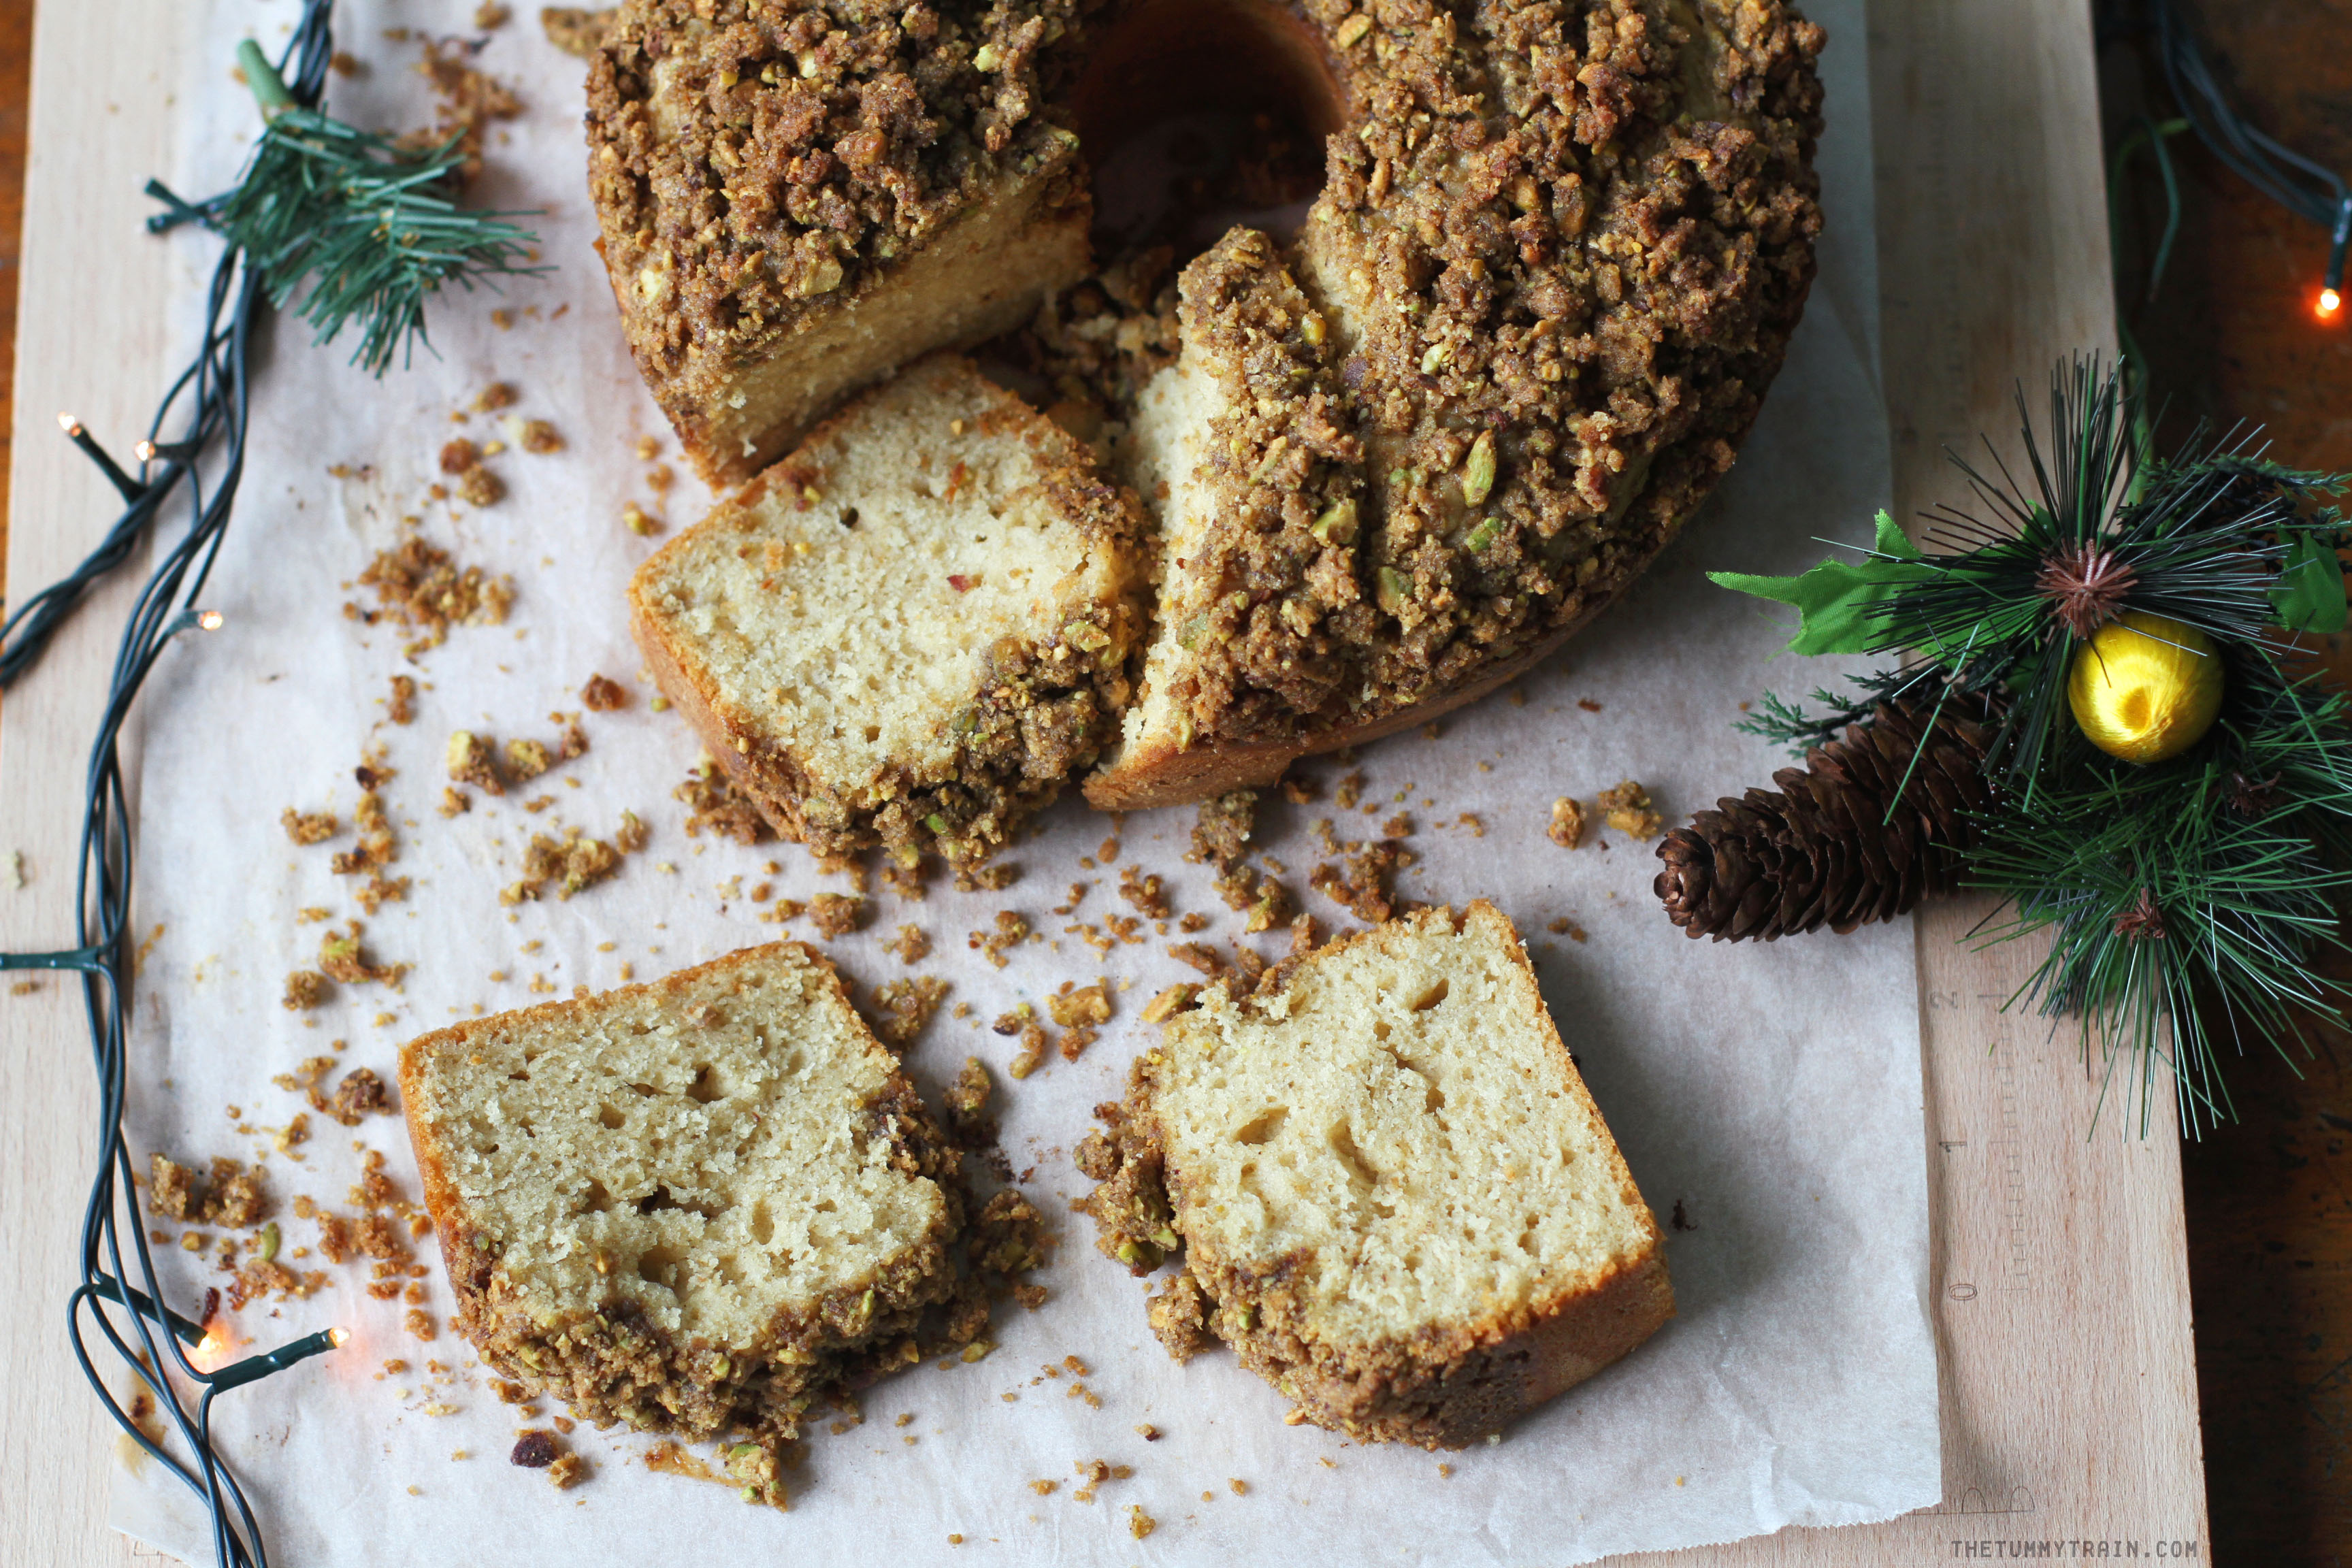 Pist Cardamom Coffee Cake 1 - A Cardamom Coffee Cake Recipe to wish you a cozy and peaceful Christmas